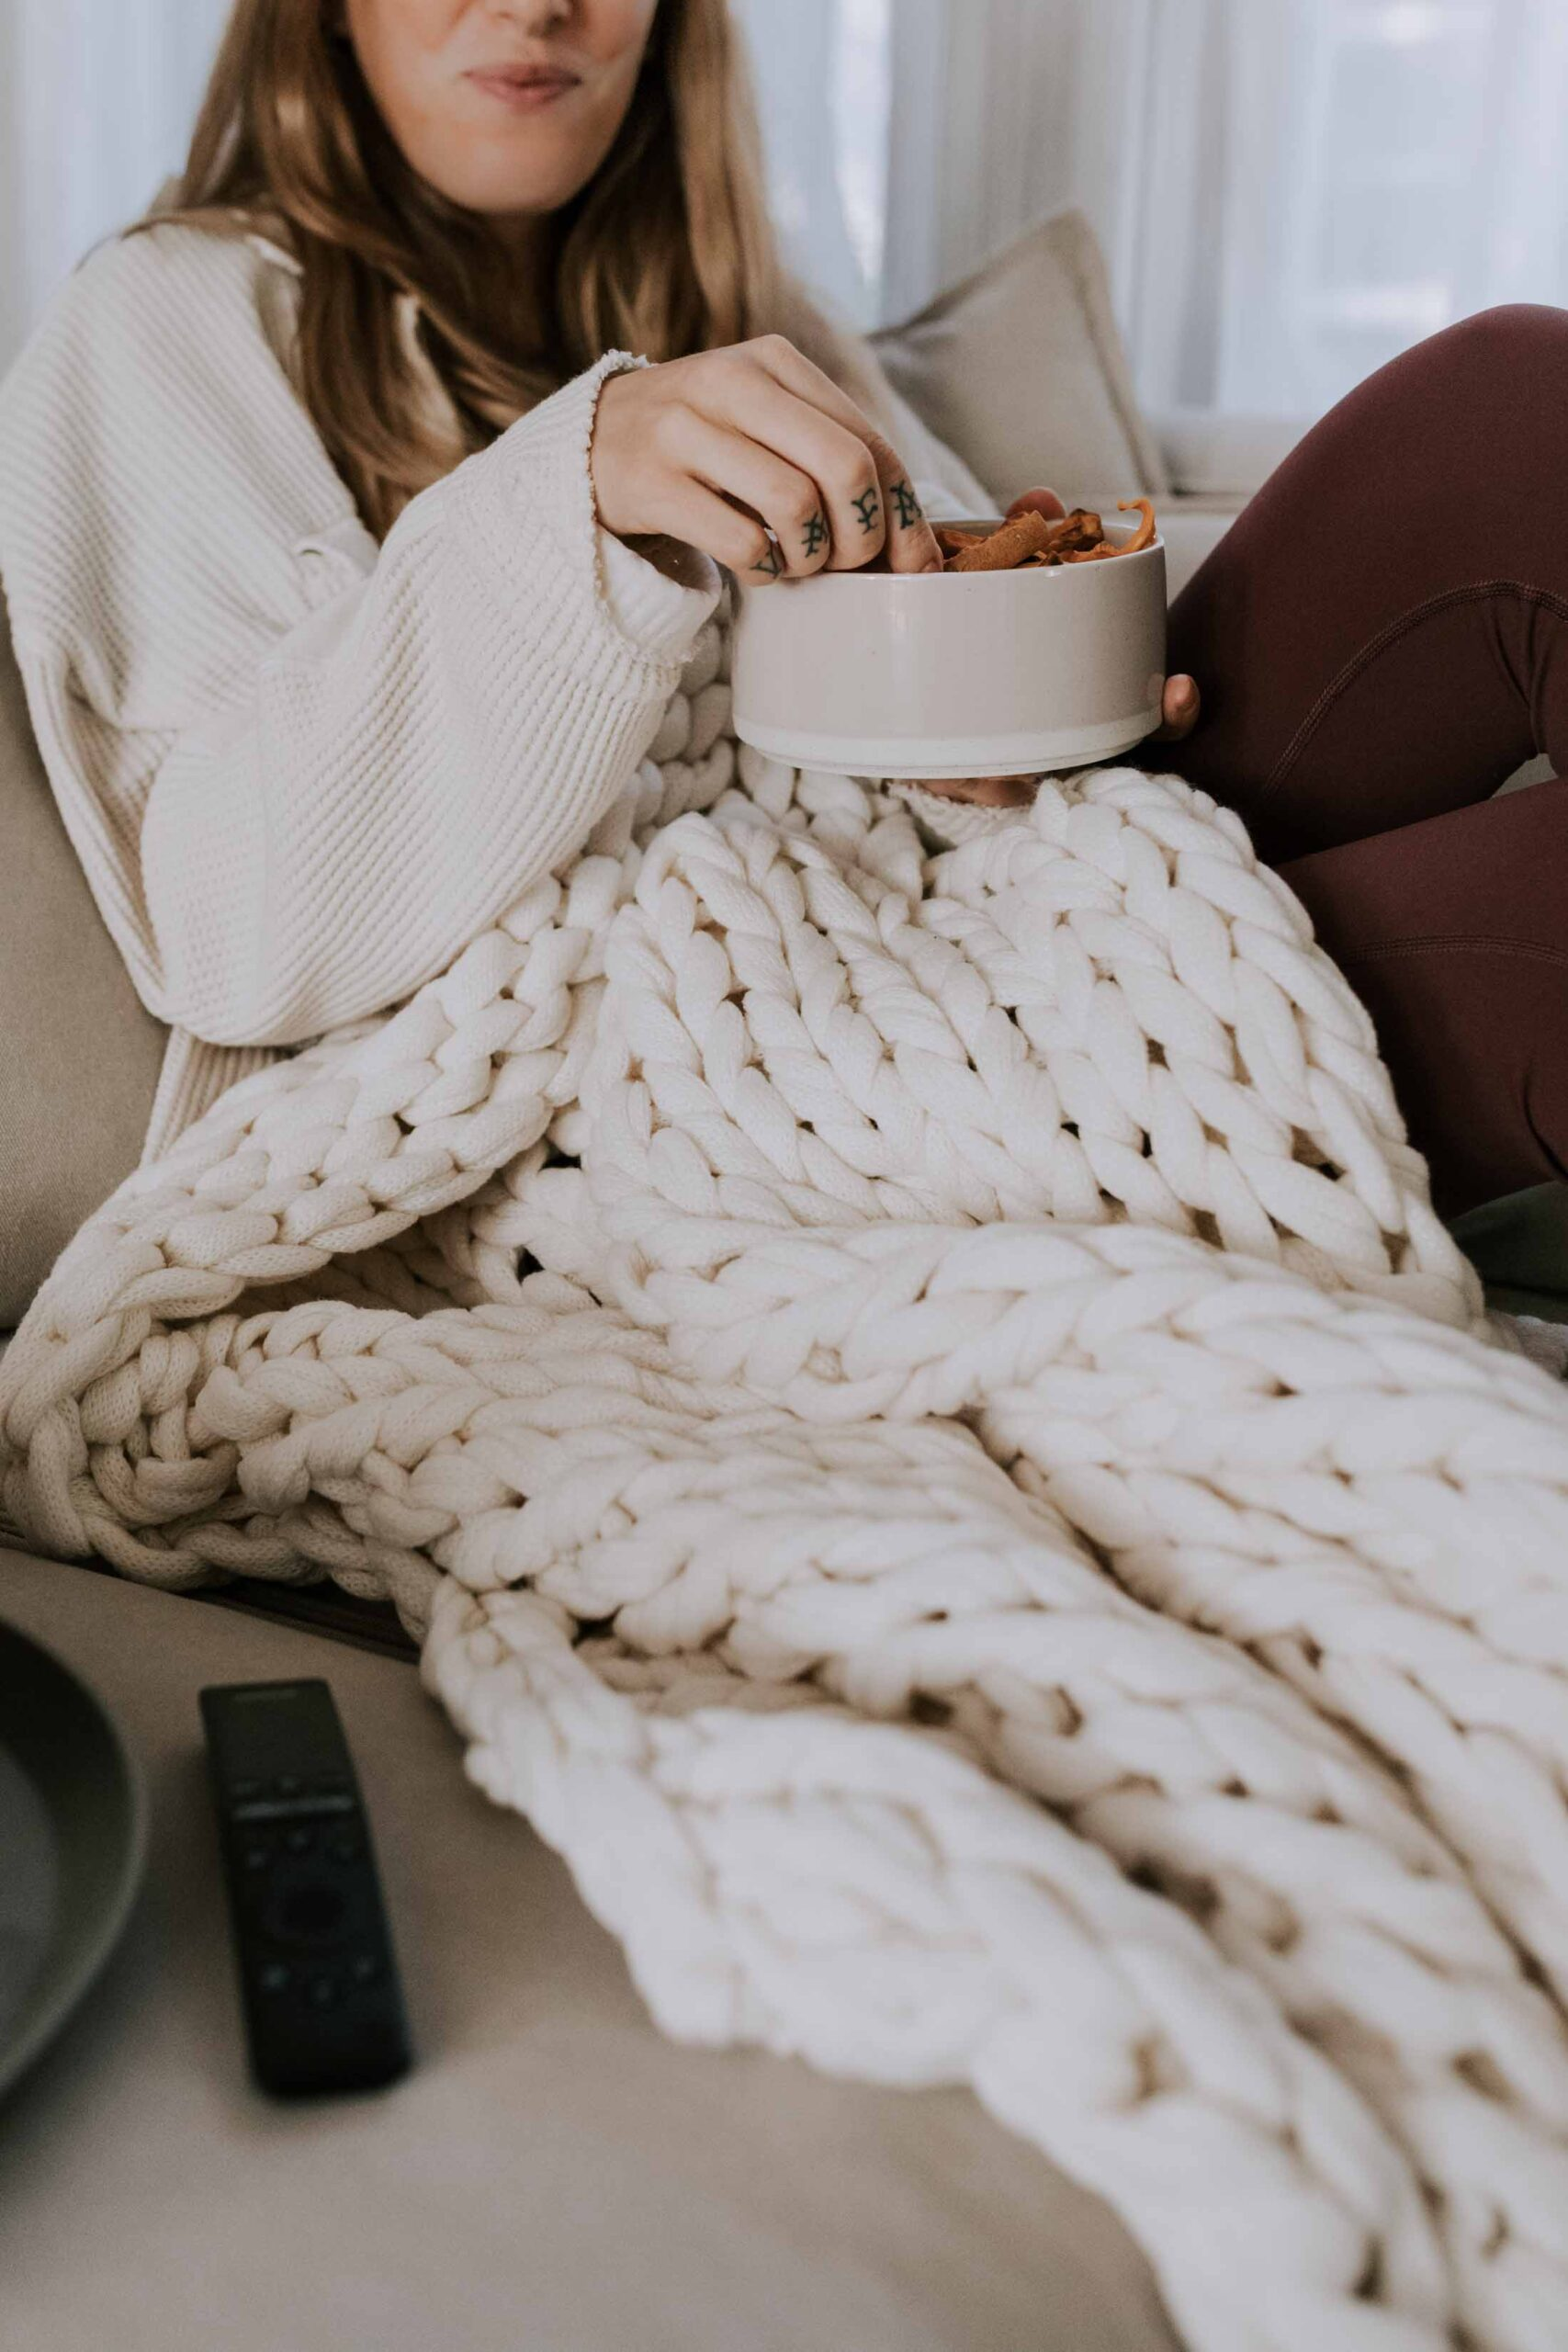 I'm actually low-key obsessed with shopping on QVC.com. I scored a kitchen item I've been wanting for years (truly) + a few other items perfect for cozy autumn weekends.